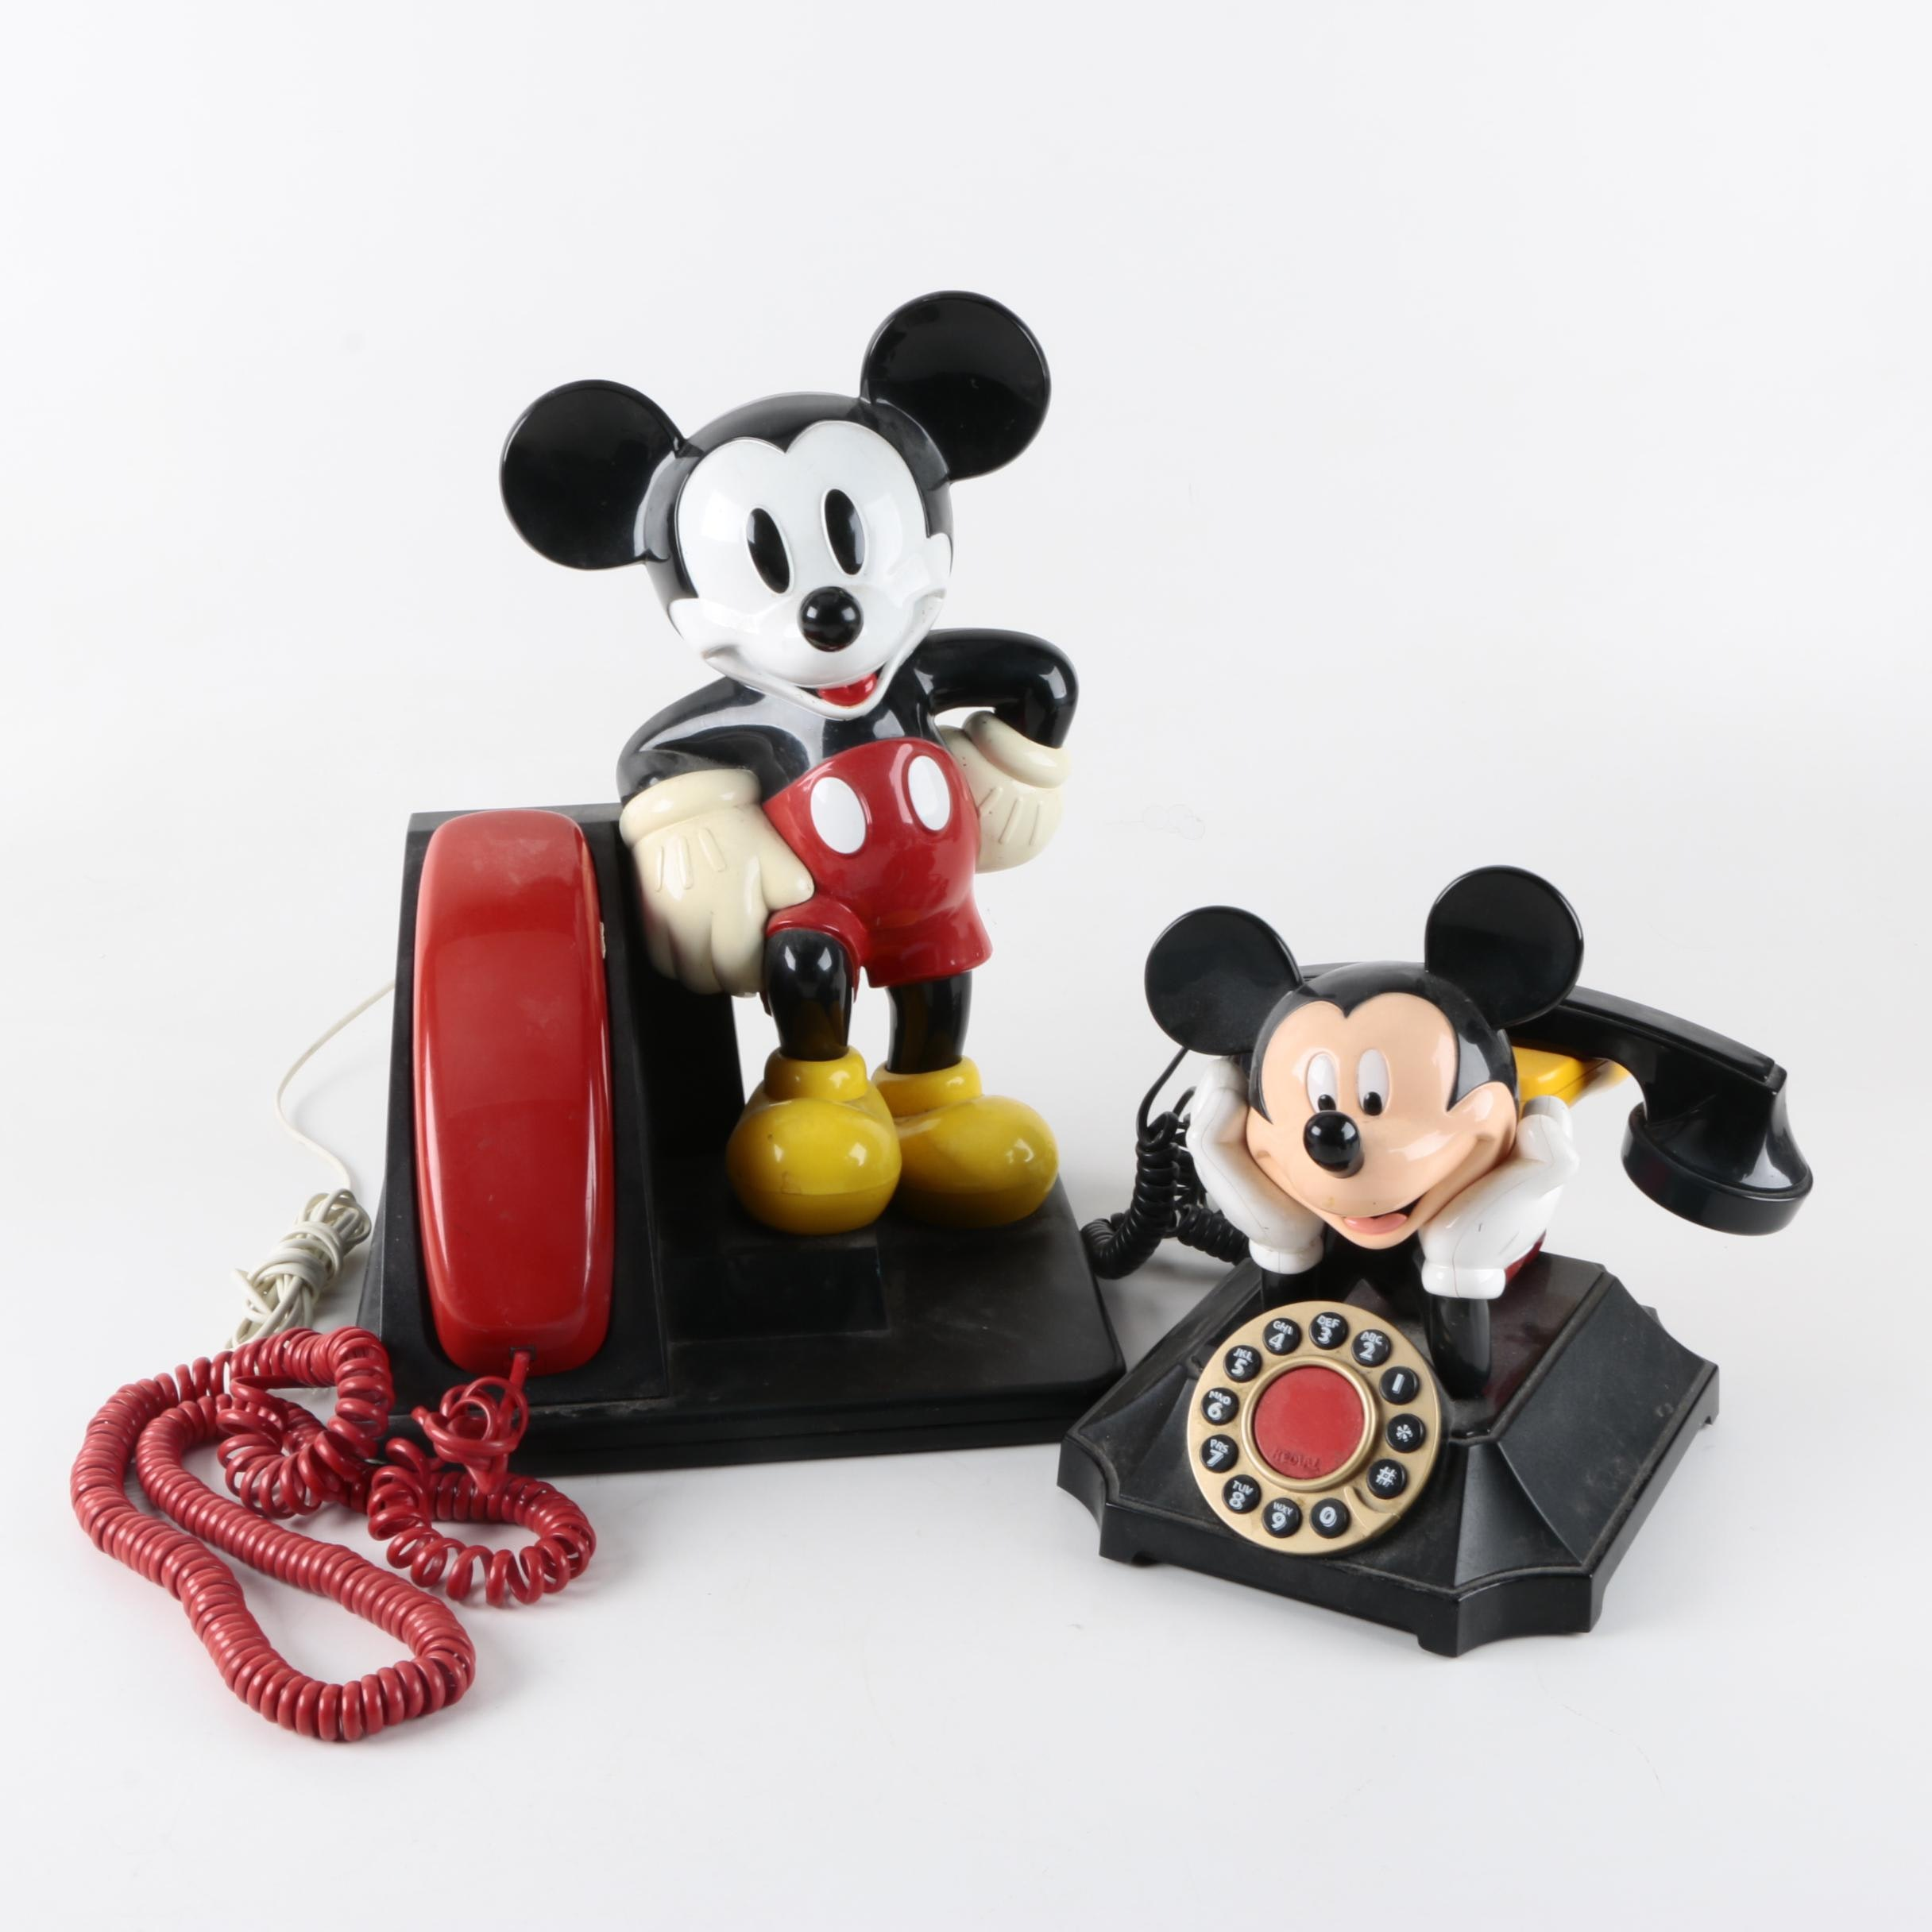 Mickey Mouse Telephones